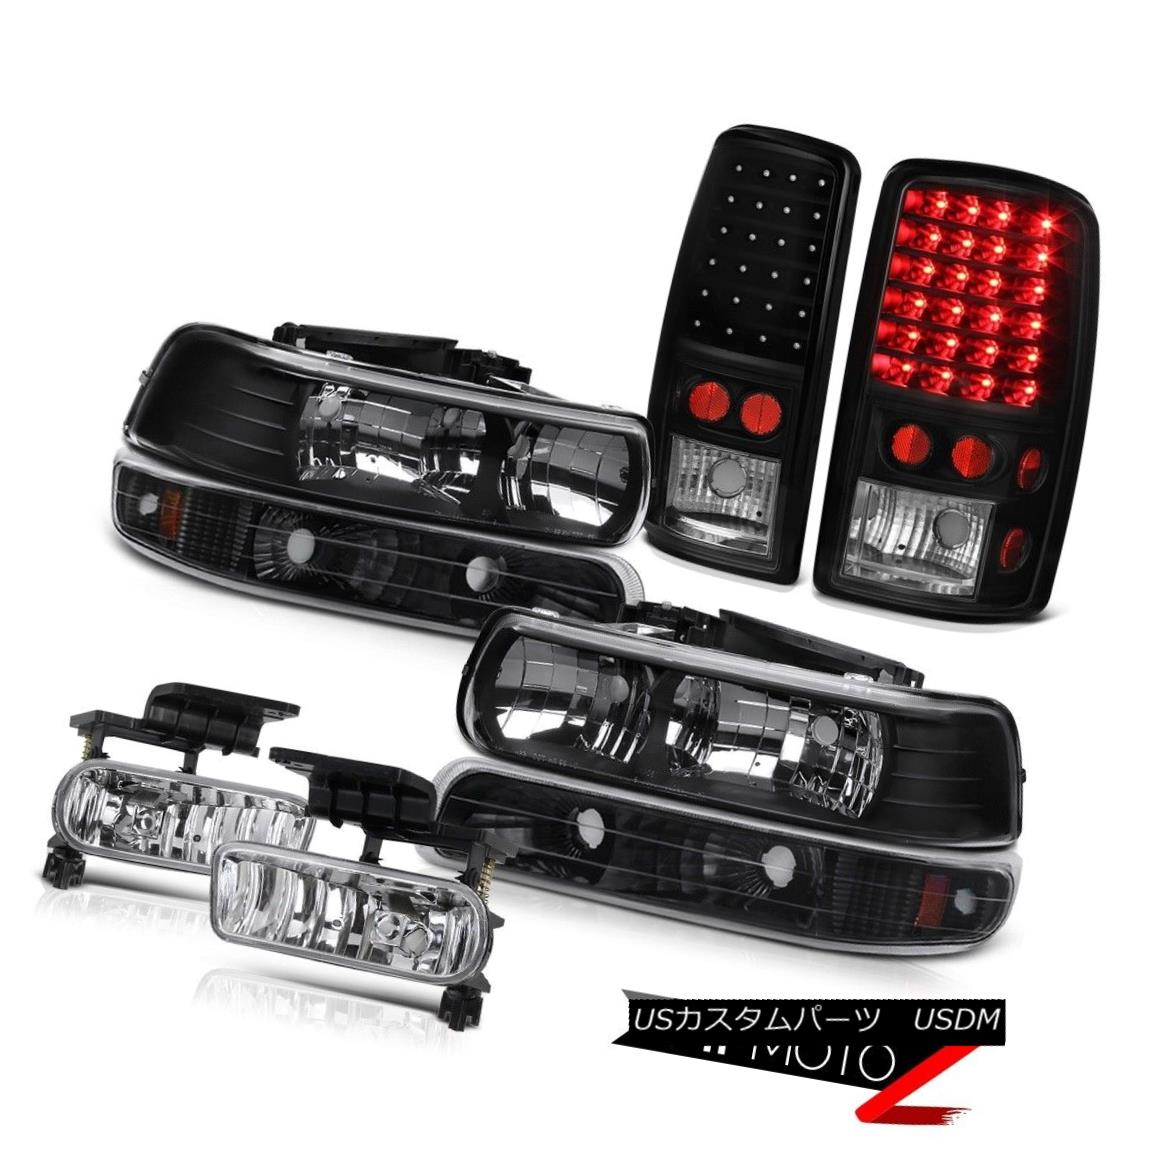 ヘッドライト Headlights Turn Signal LED Taillights Chrome Fog 00 01 02 03 04 05 06 Tahoe LT ヘッドライトターンシグナルLEDテールライトChrome Fog 00 01 02 03 04 05 06 Tahoe LT